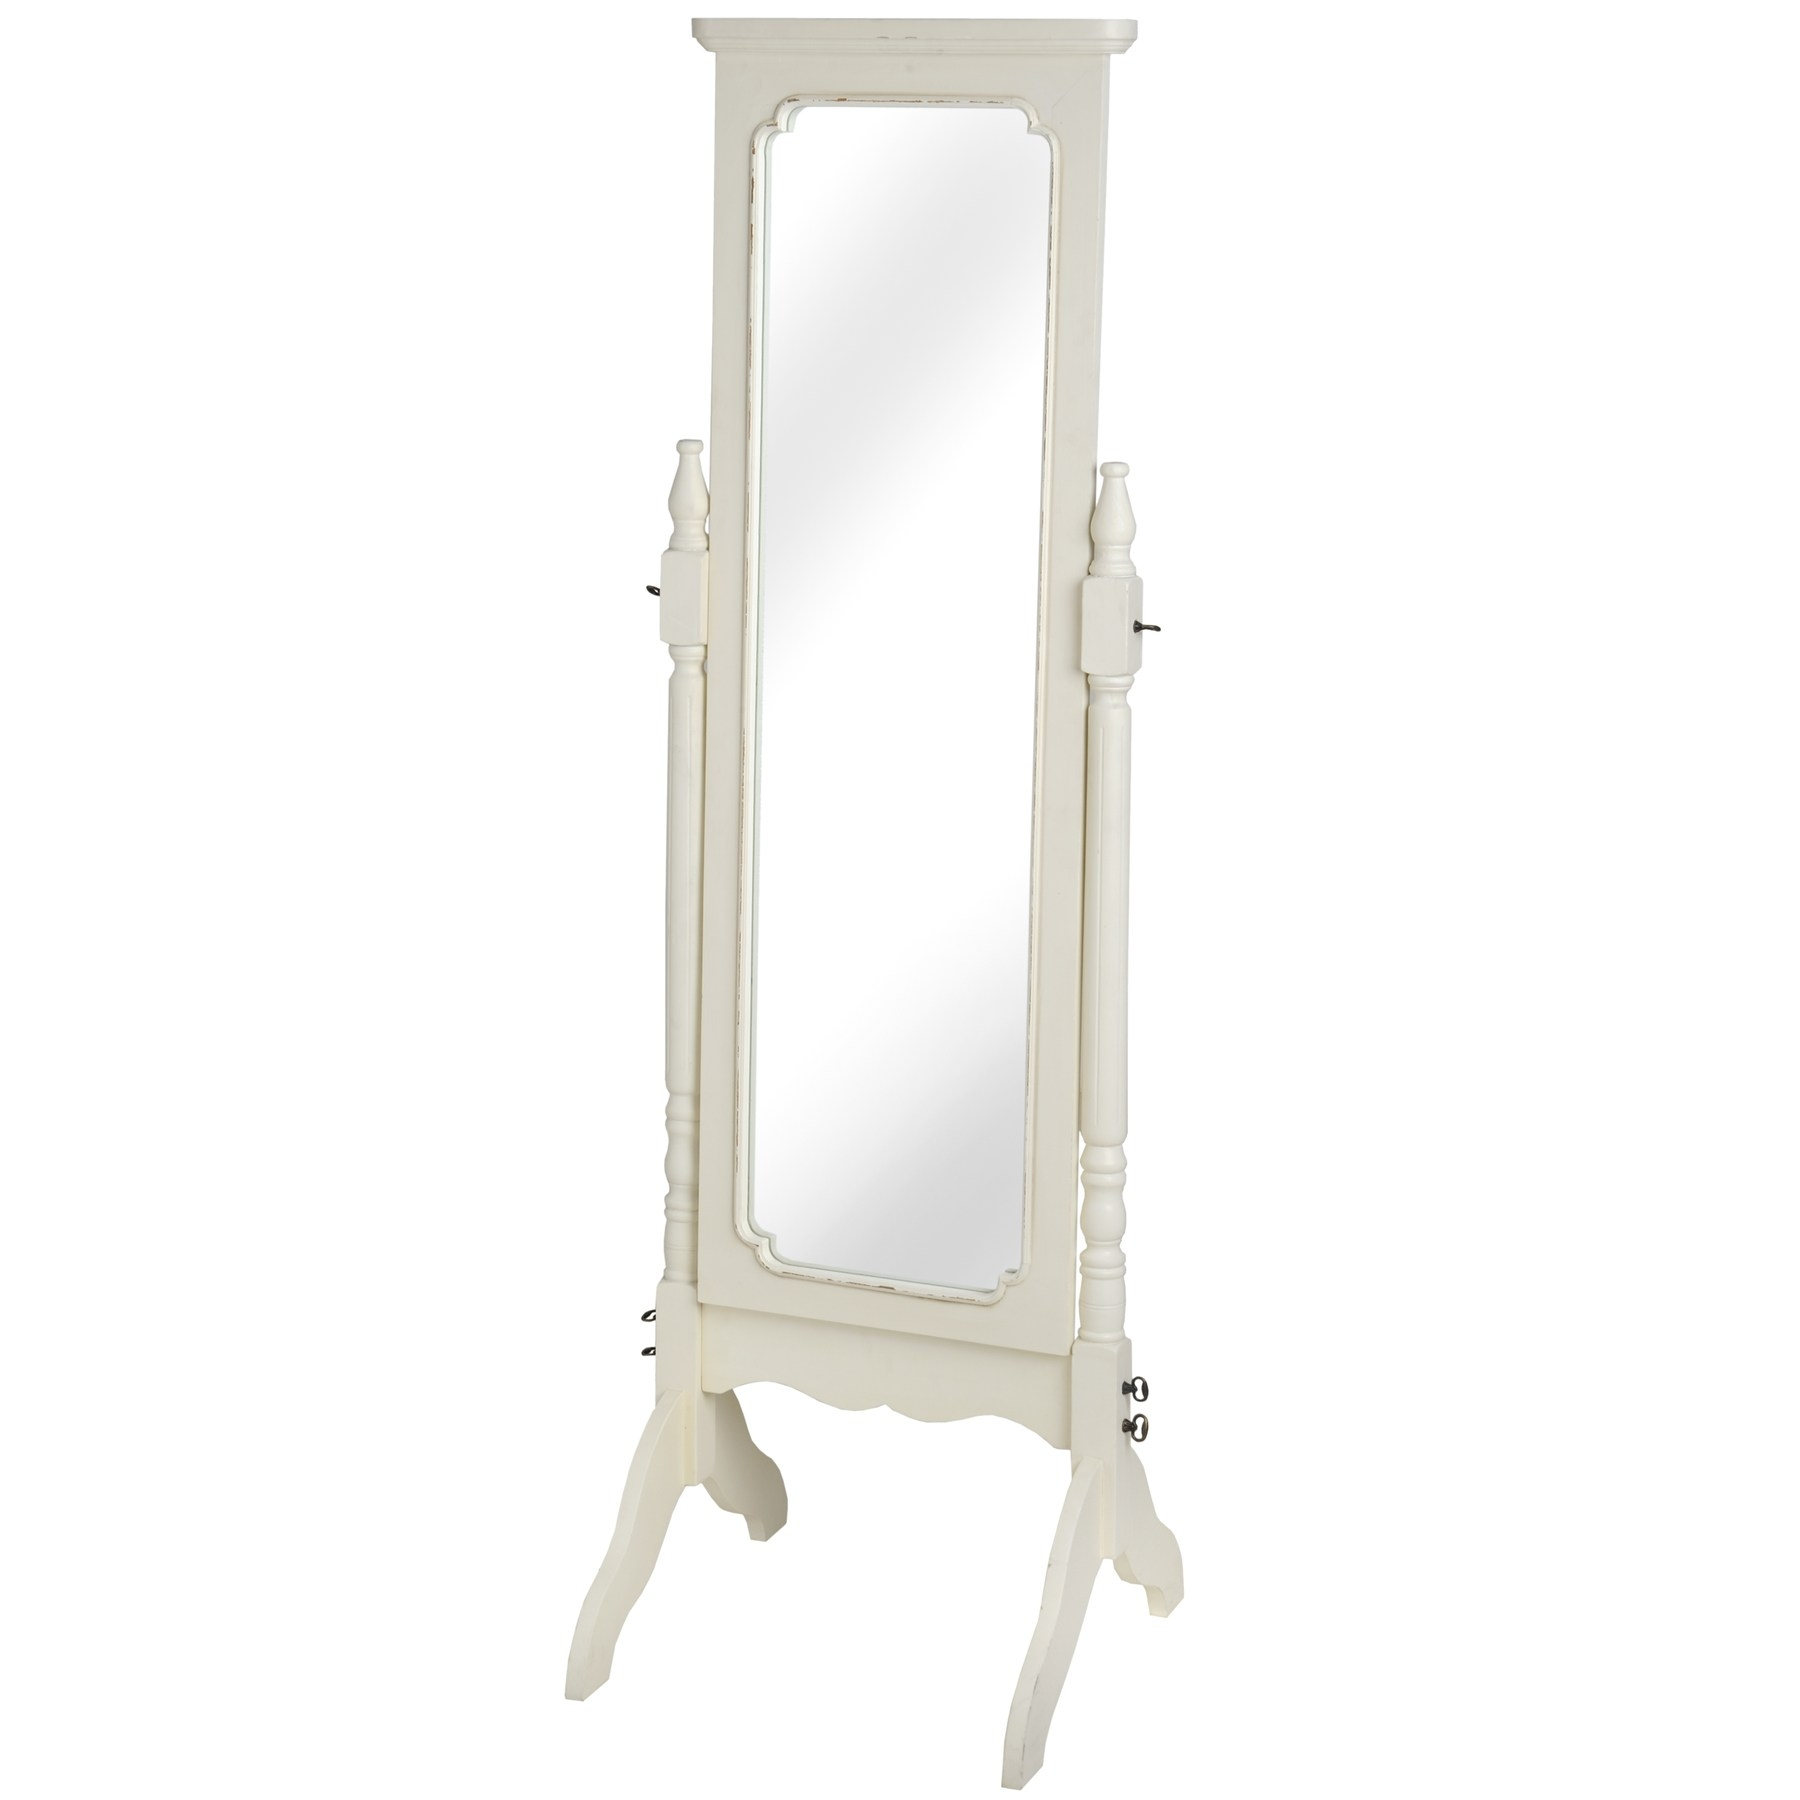 Pavilion Mirror On A Stand From Baytree Interiors With Regard To Shabby Chic Free Standing Mirror (View 3 of 15)